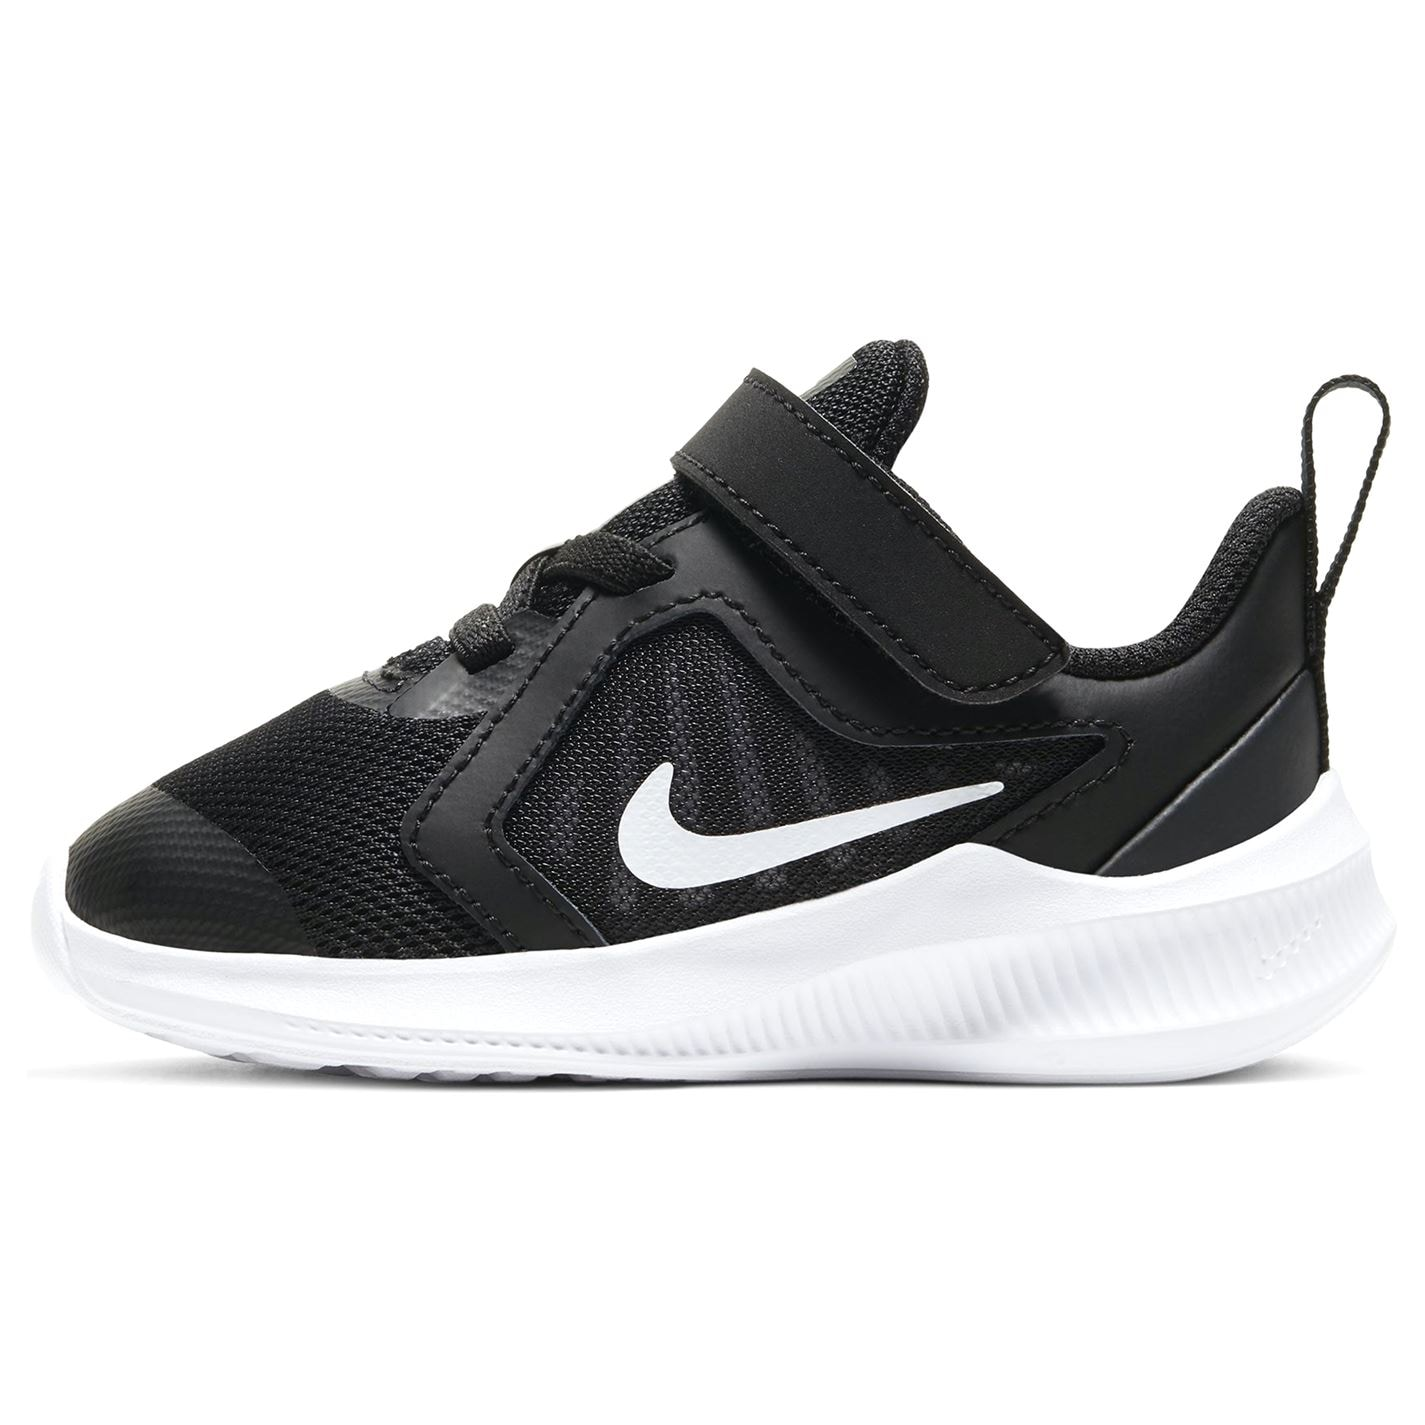 Nike Downshifter 10 Trainers Infant Boys BLACK/WHITE-ANTHRACITE